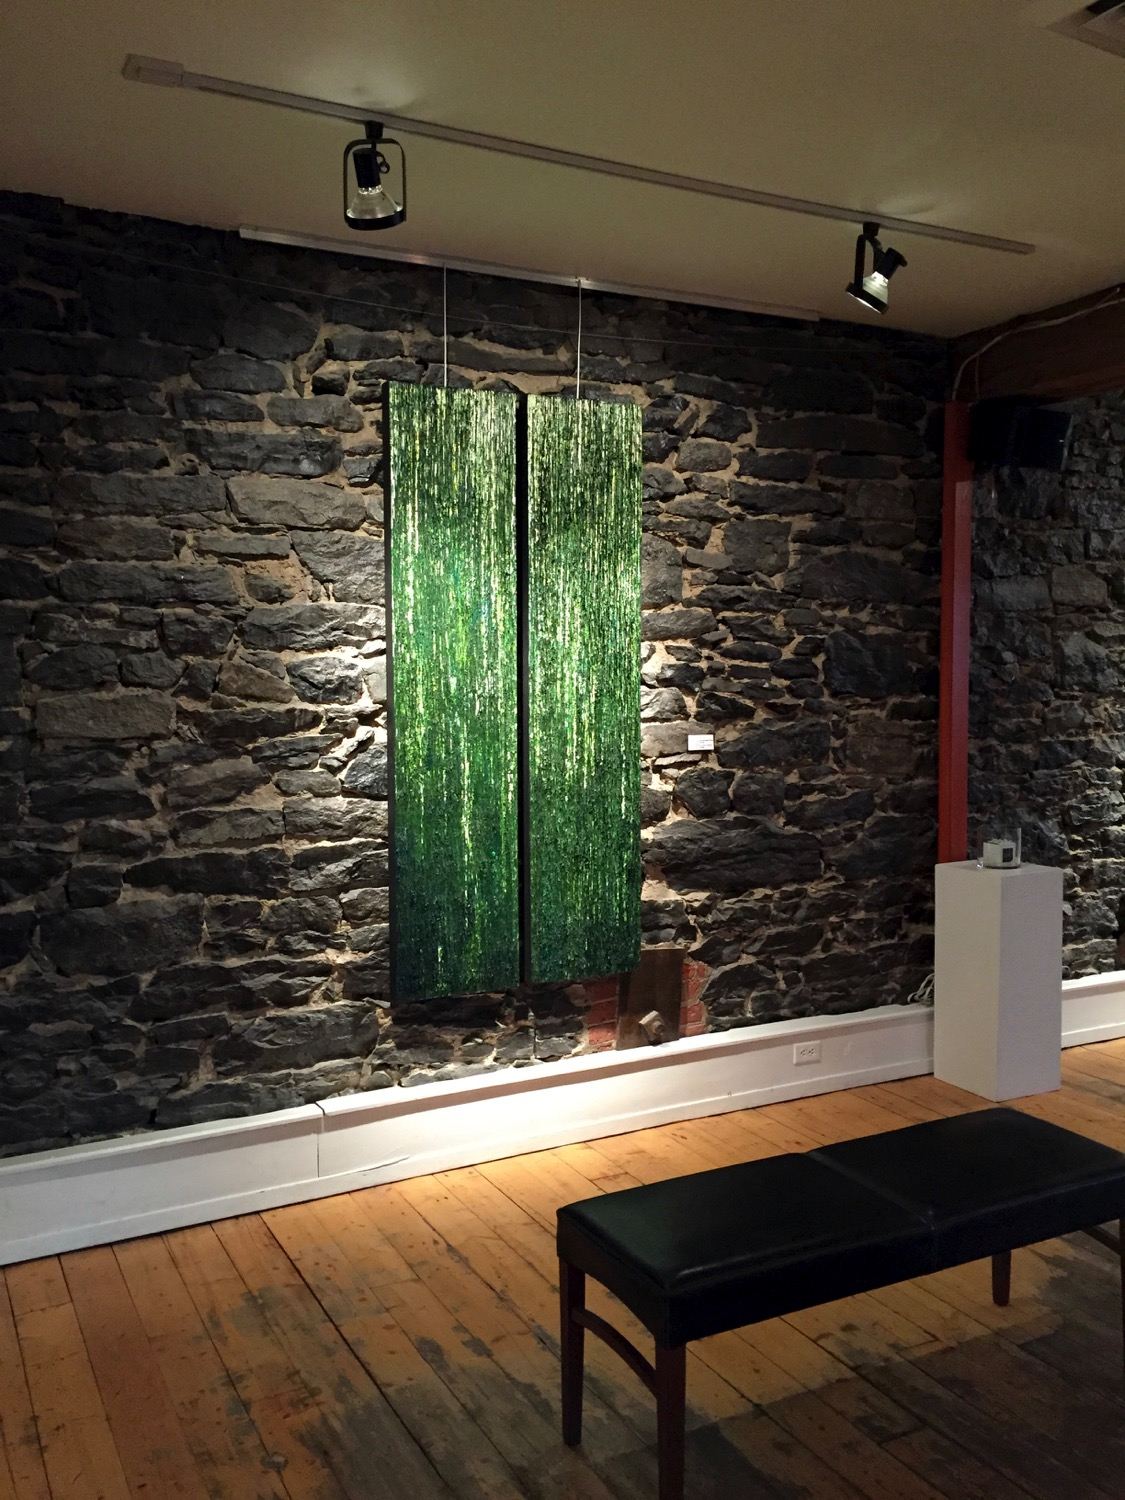 cenote-on-wall-at-galerie-avenue-art.jpg